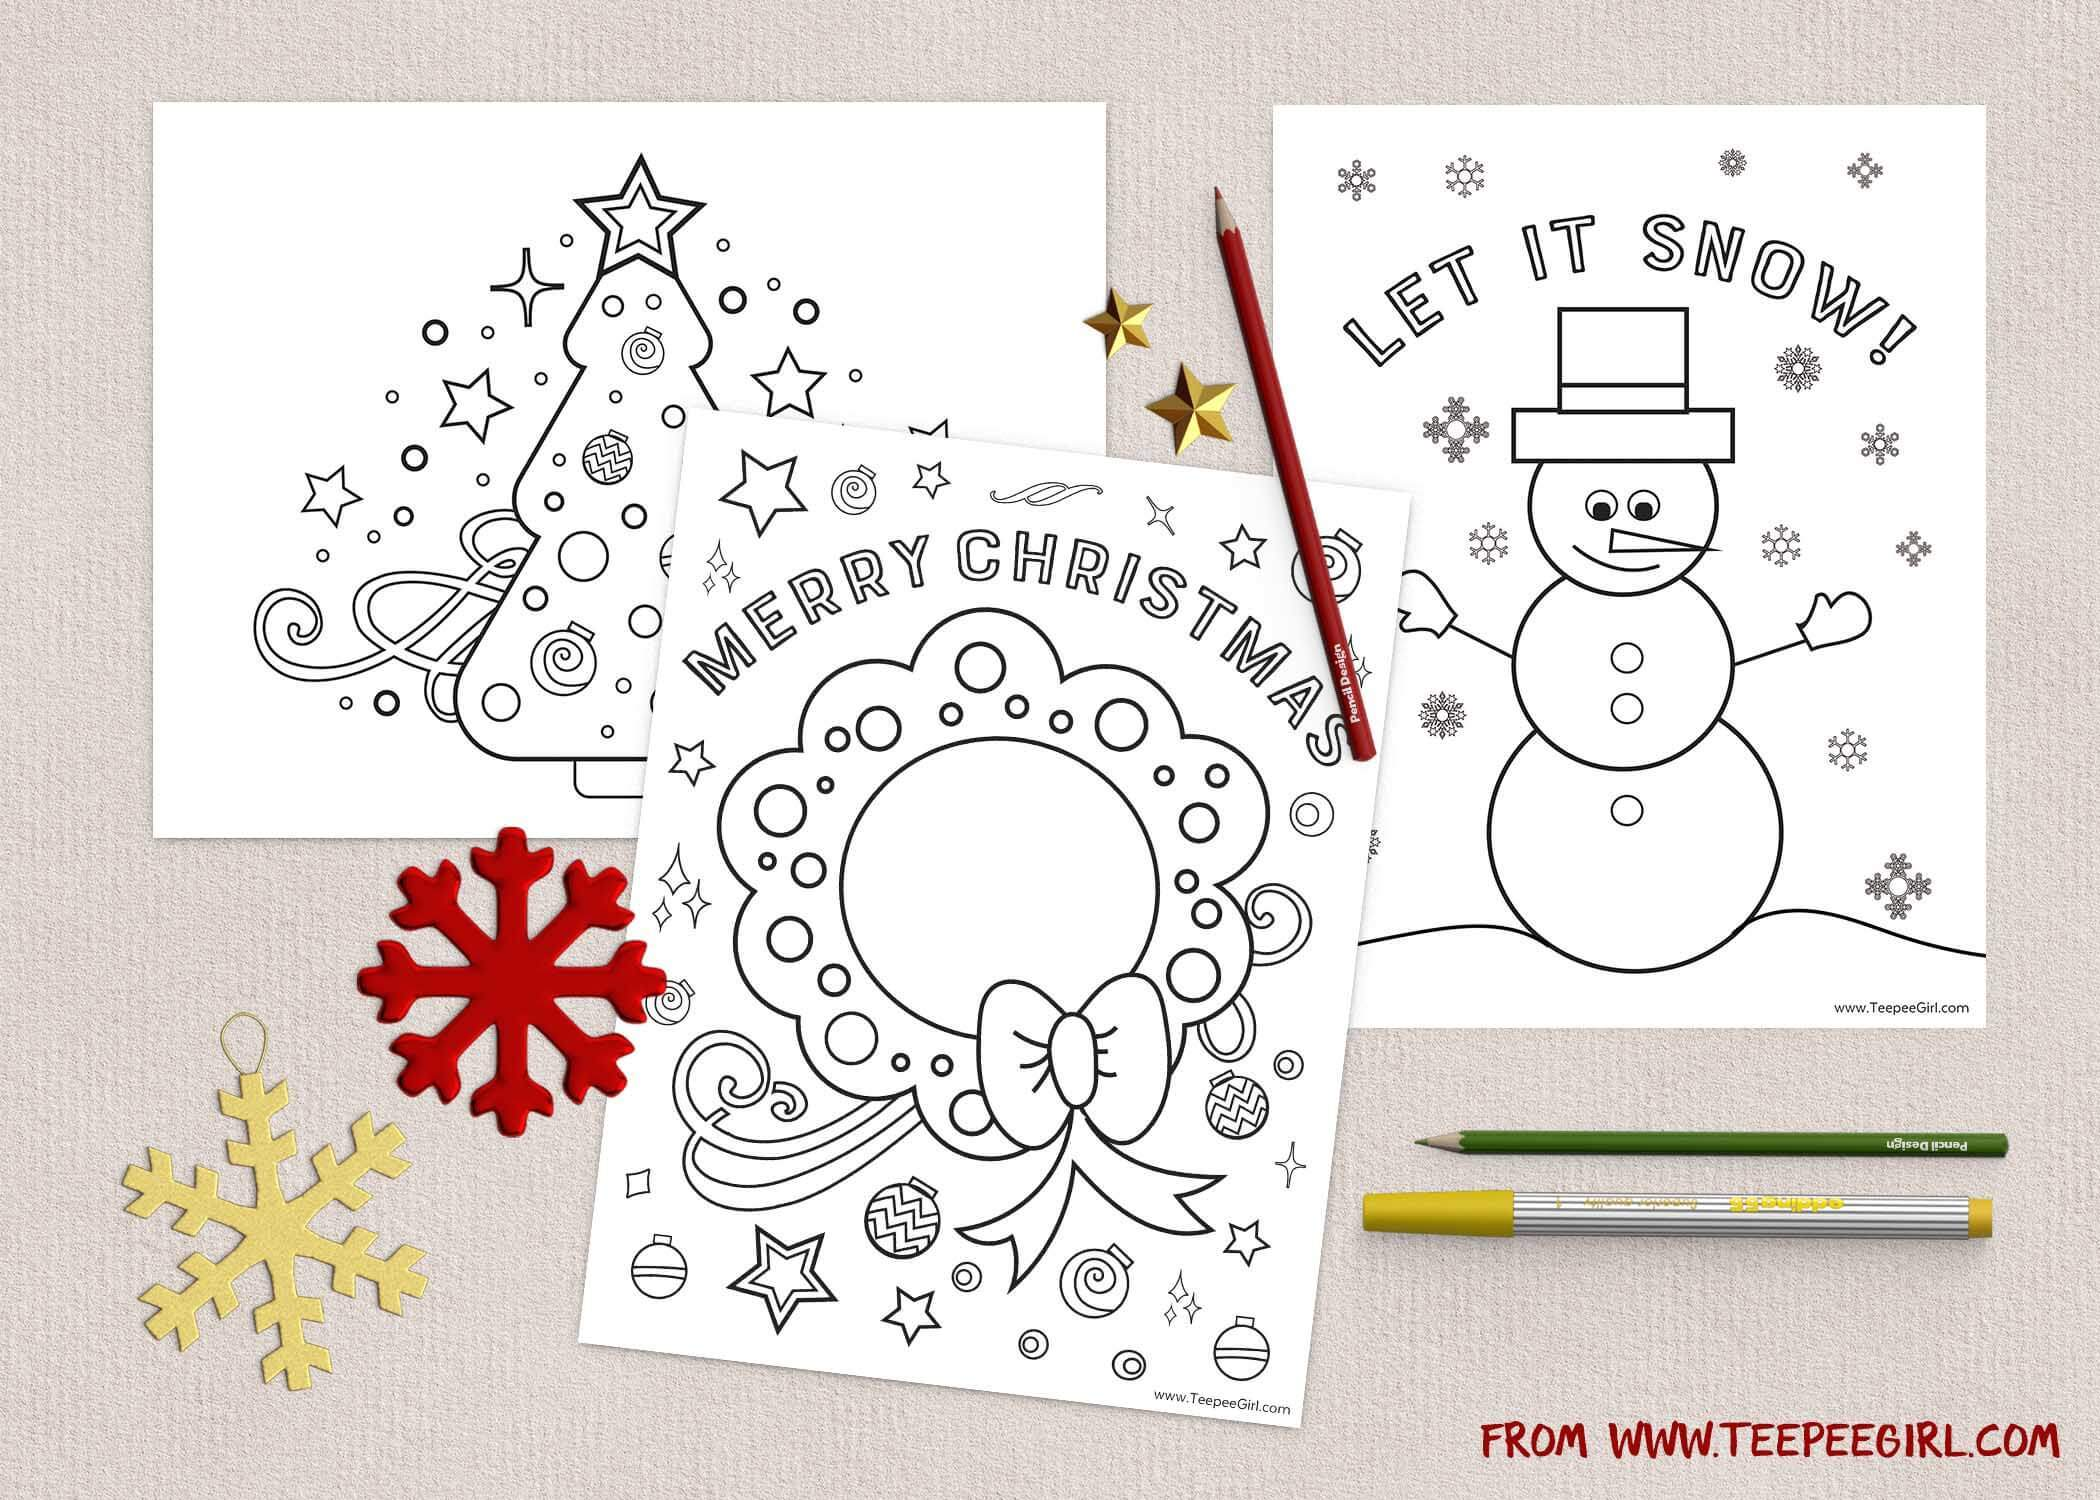 Christmas Coloring Pages For Church With Free Www TeepeeGirl Com